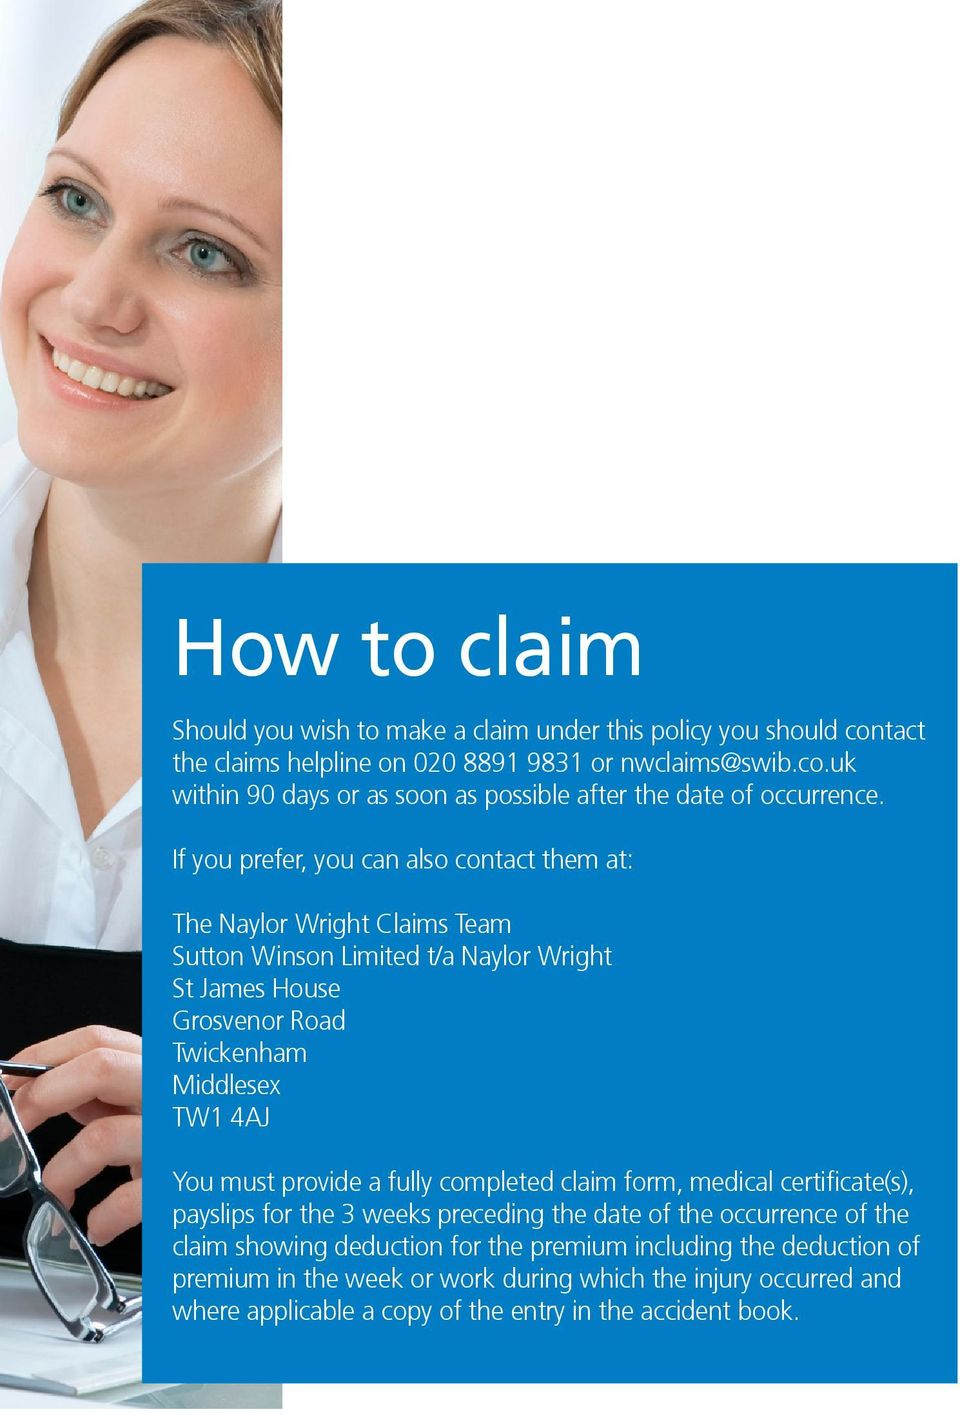 must provide a fully completed claim form, medical certificate(s), payslips for the 3 weeks preceding the date of the occurrence of the claim showing deduction for the premium